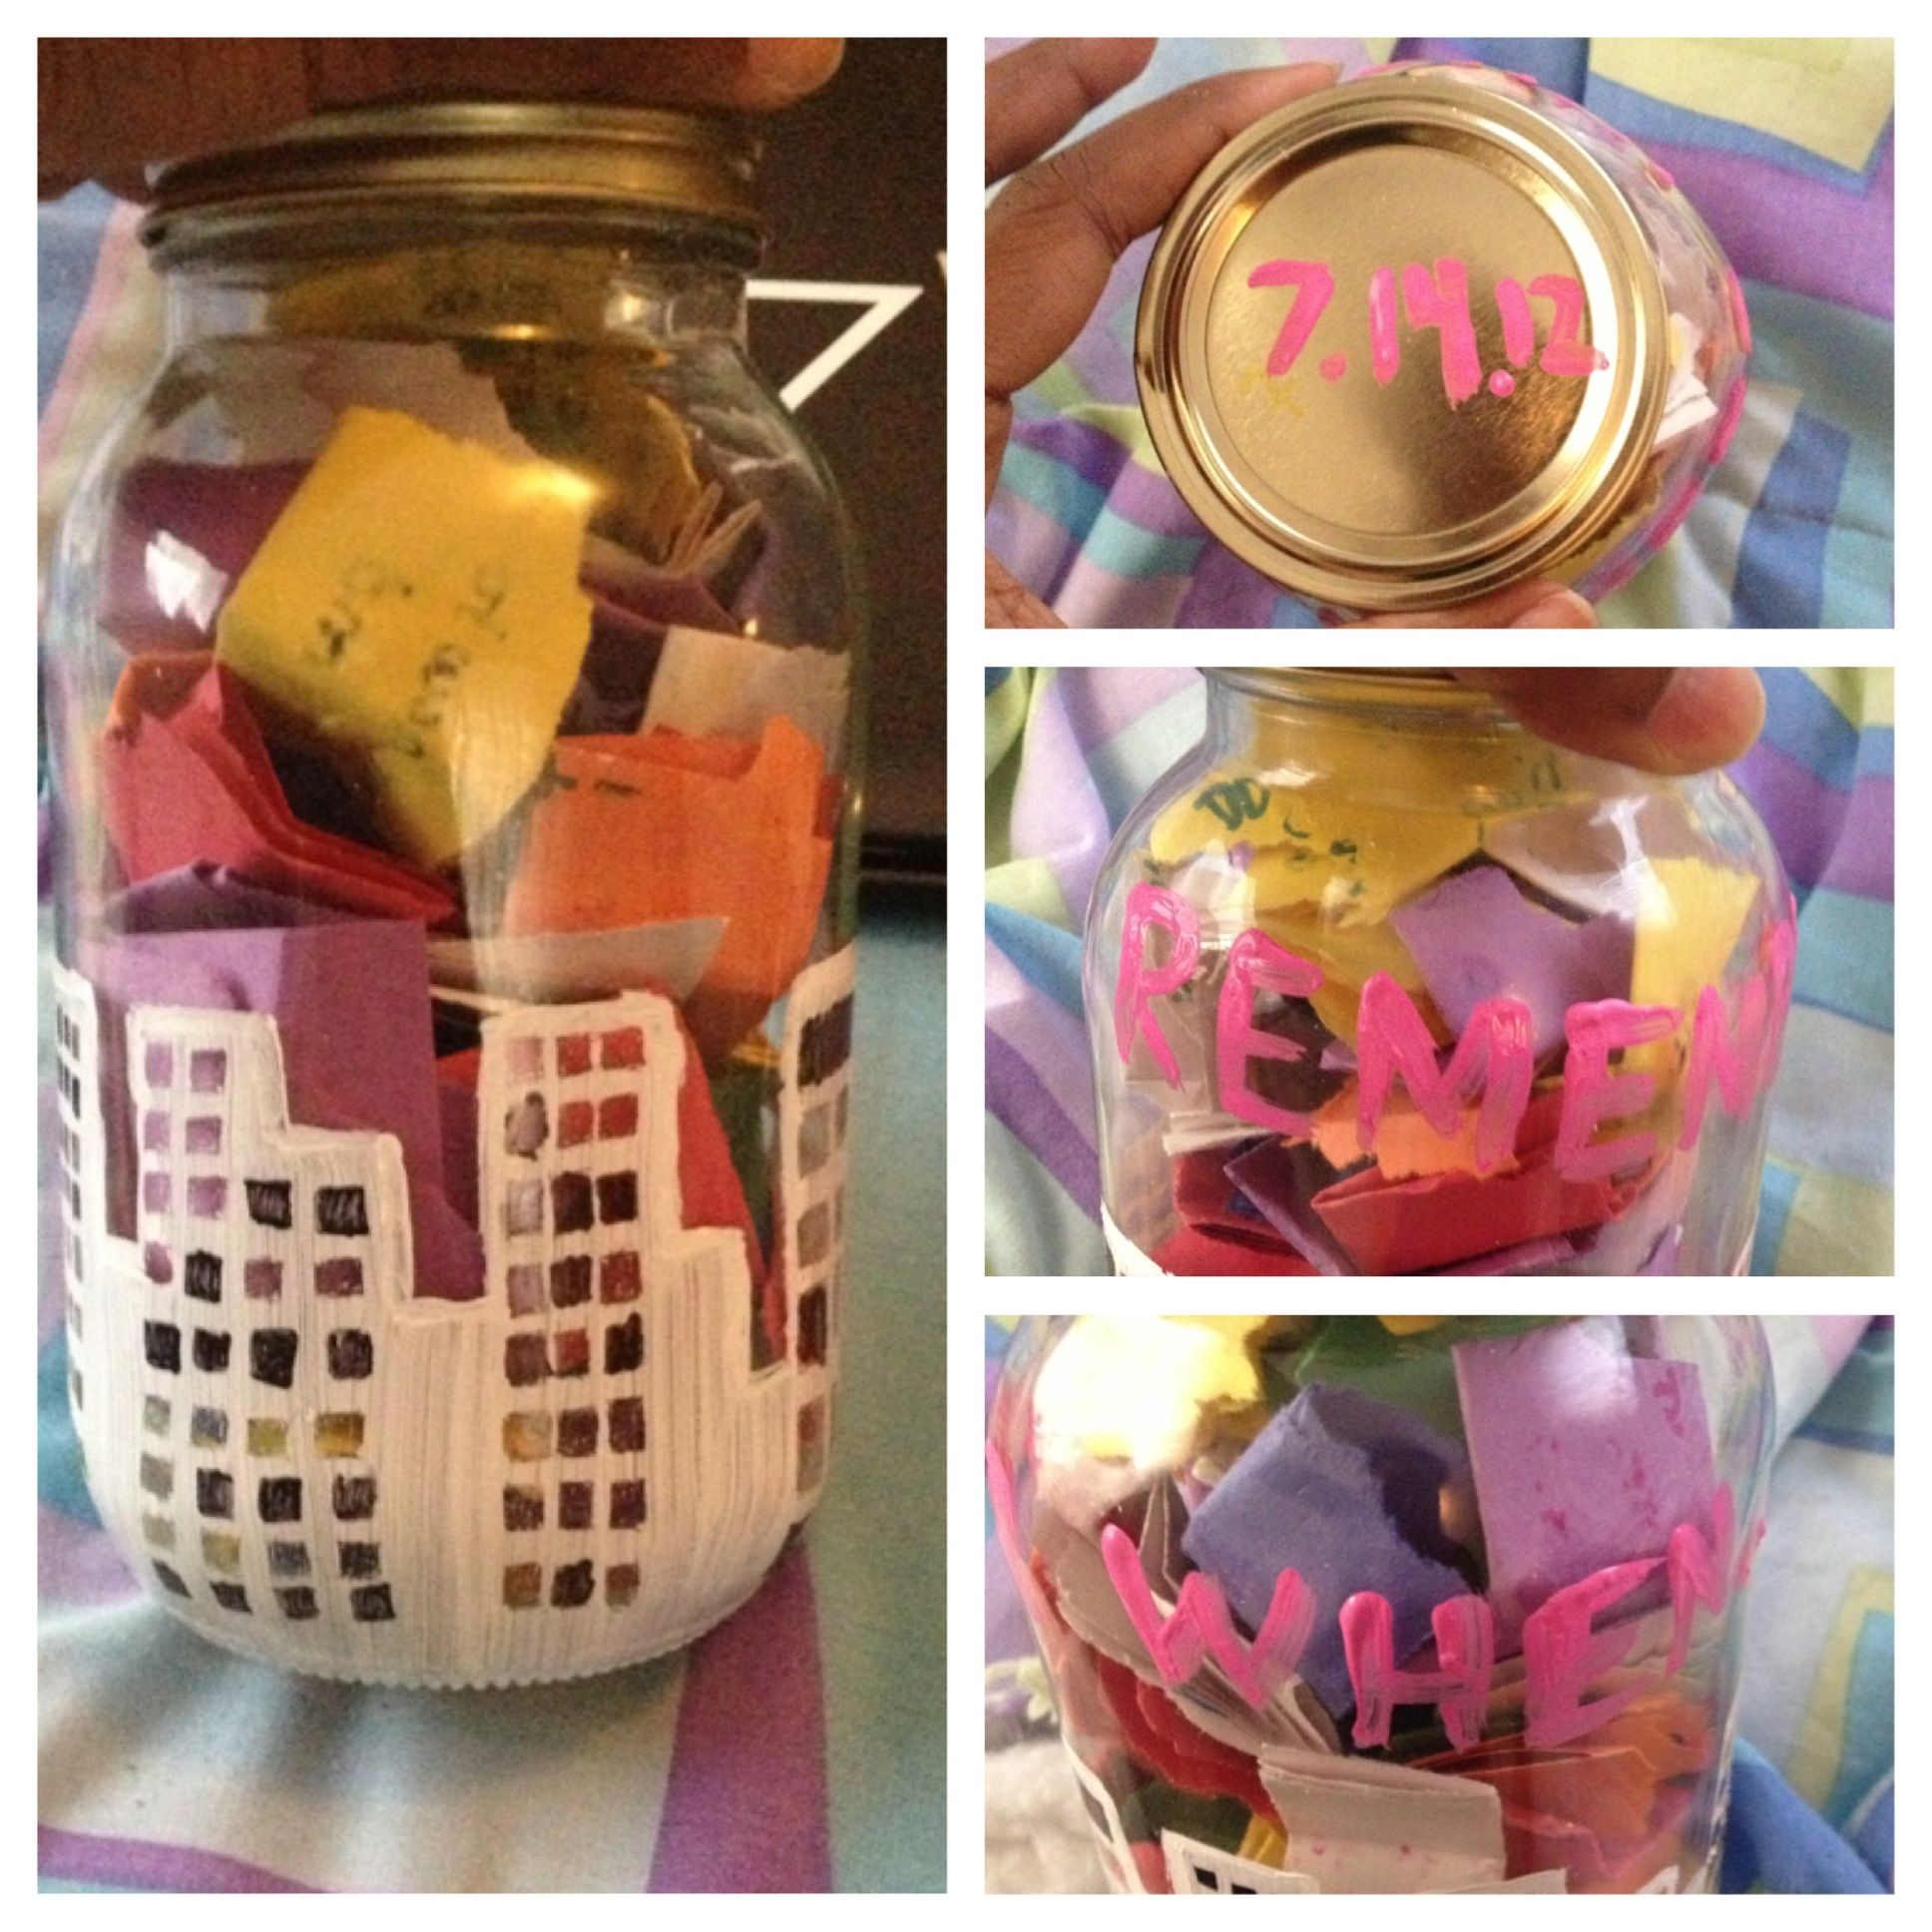 A Remember When Jar That I Made For My Boyfriend For Our 6th Month Anniversary Every Day I Would Write A Boyfriend Gifts 6 Month Anniversary Super Gifts